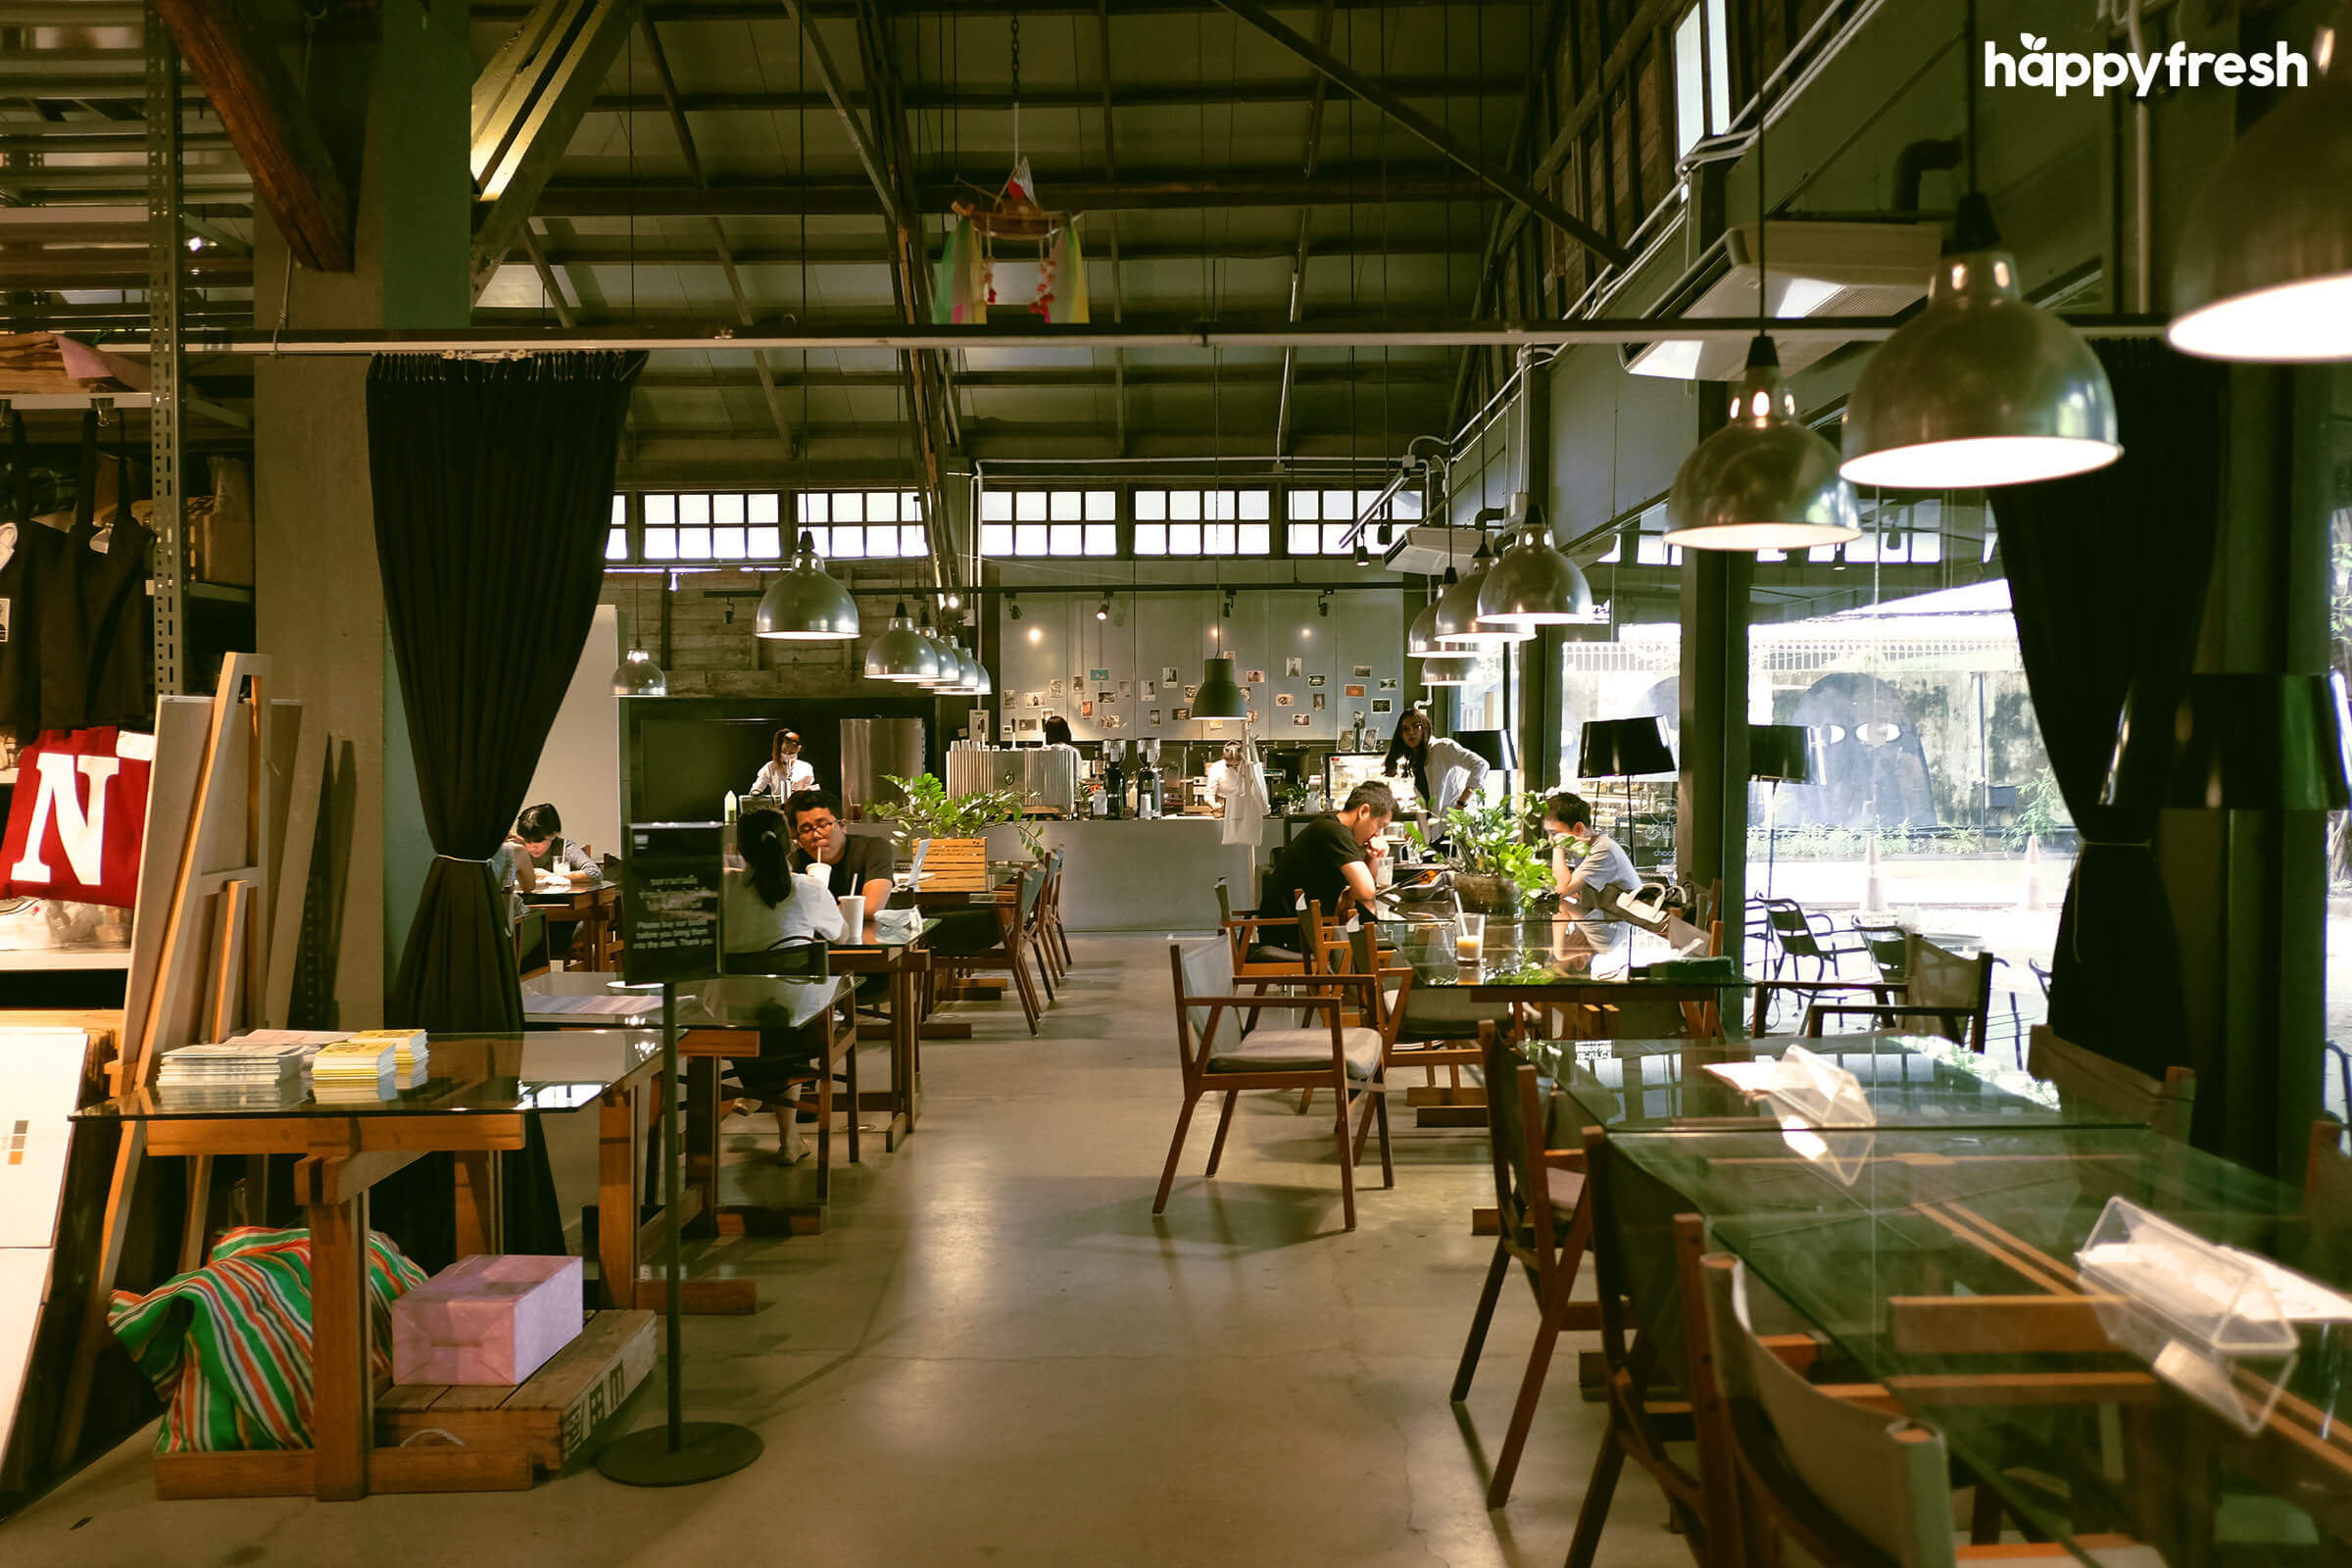 HappyFresh_Review_5_Cafes_Bookstores_In_Bangkok_Library_Cafe